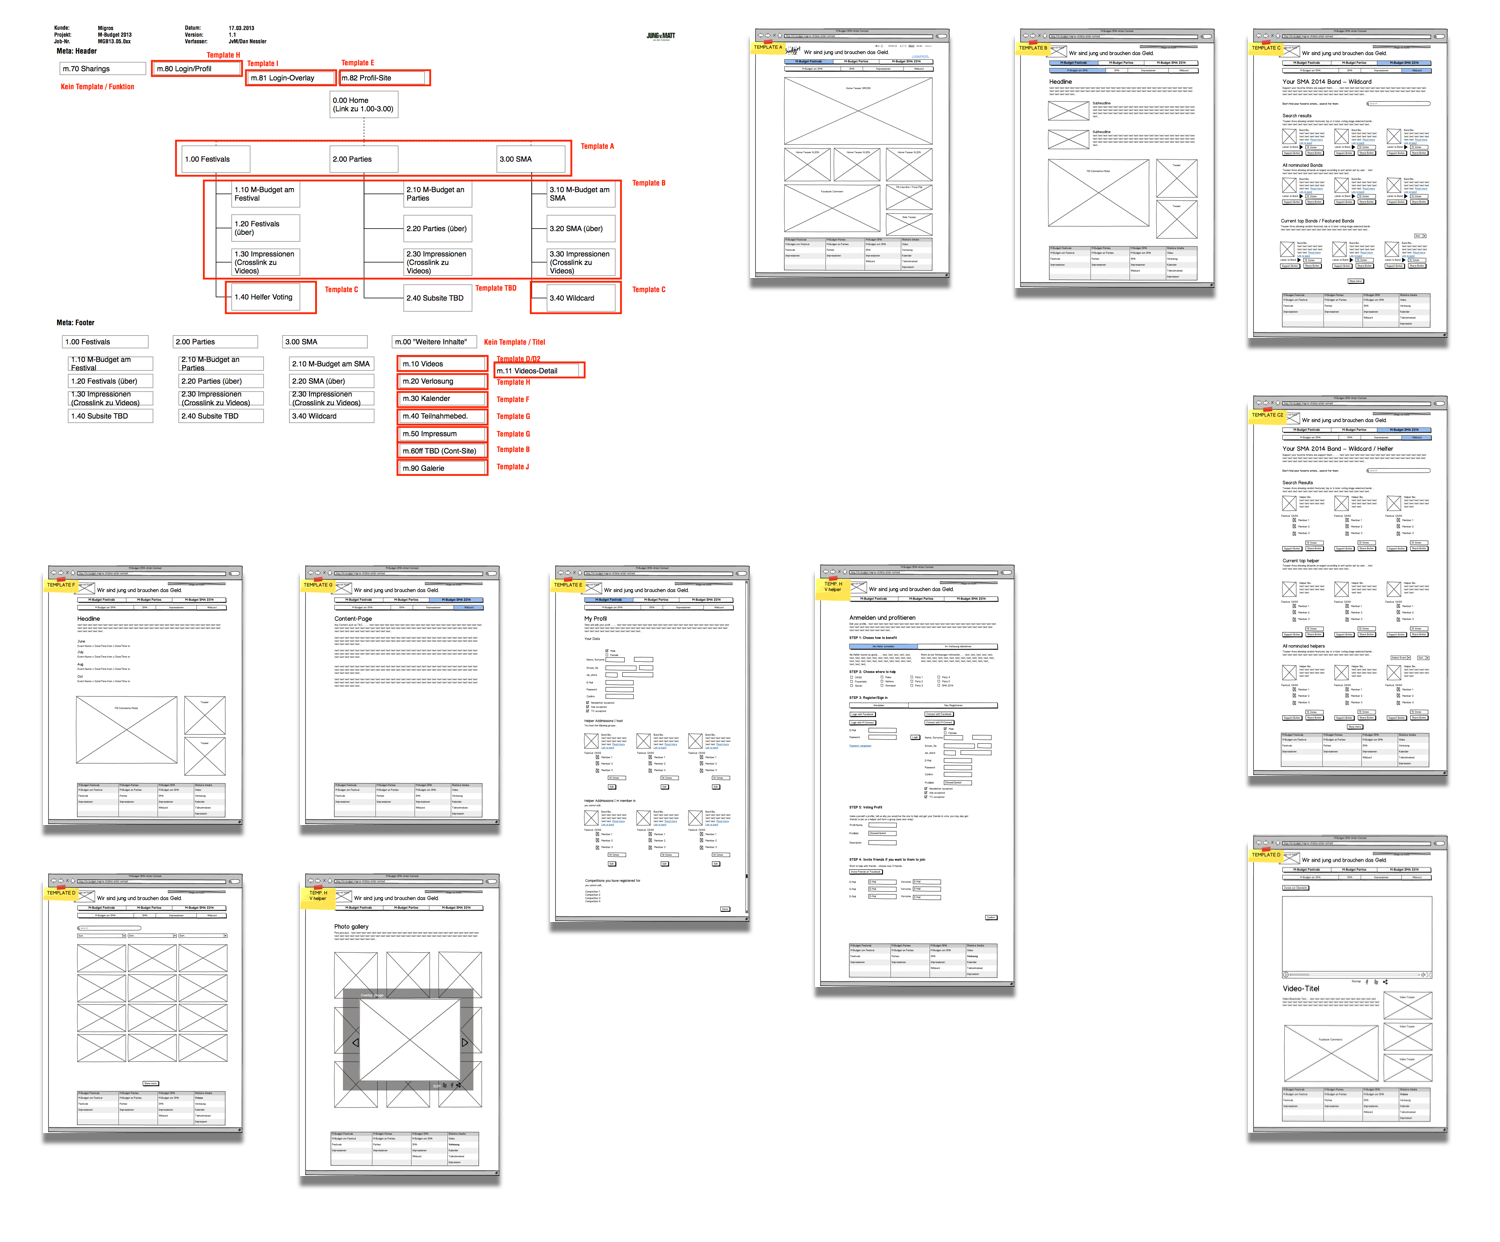 Overview of Sitemap (IA) and sample template low-fi wireframes